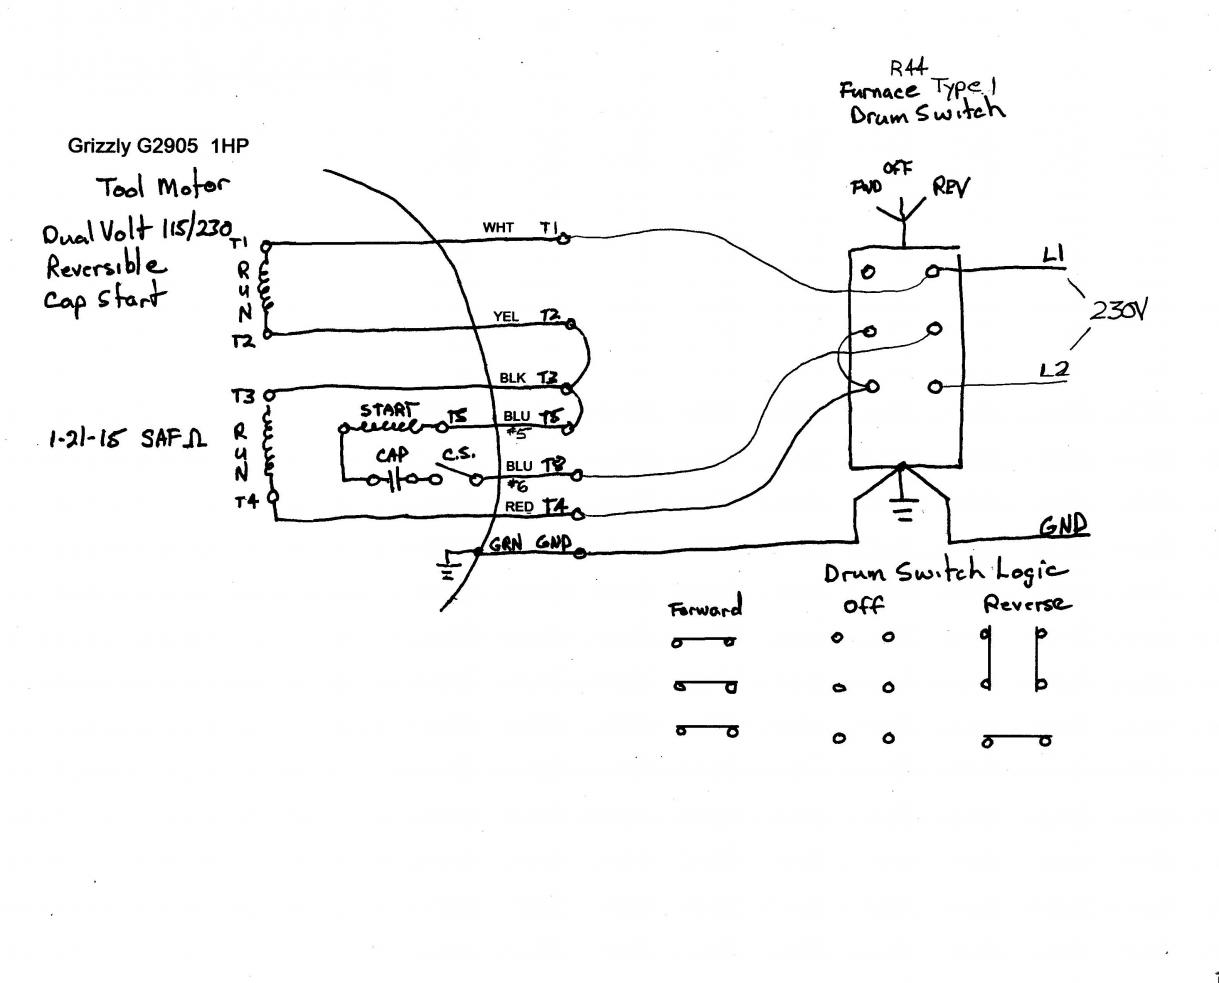 ge motor wiring diagram wires wiring diagram how do i wire an old furnace motor so i